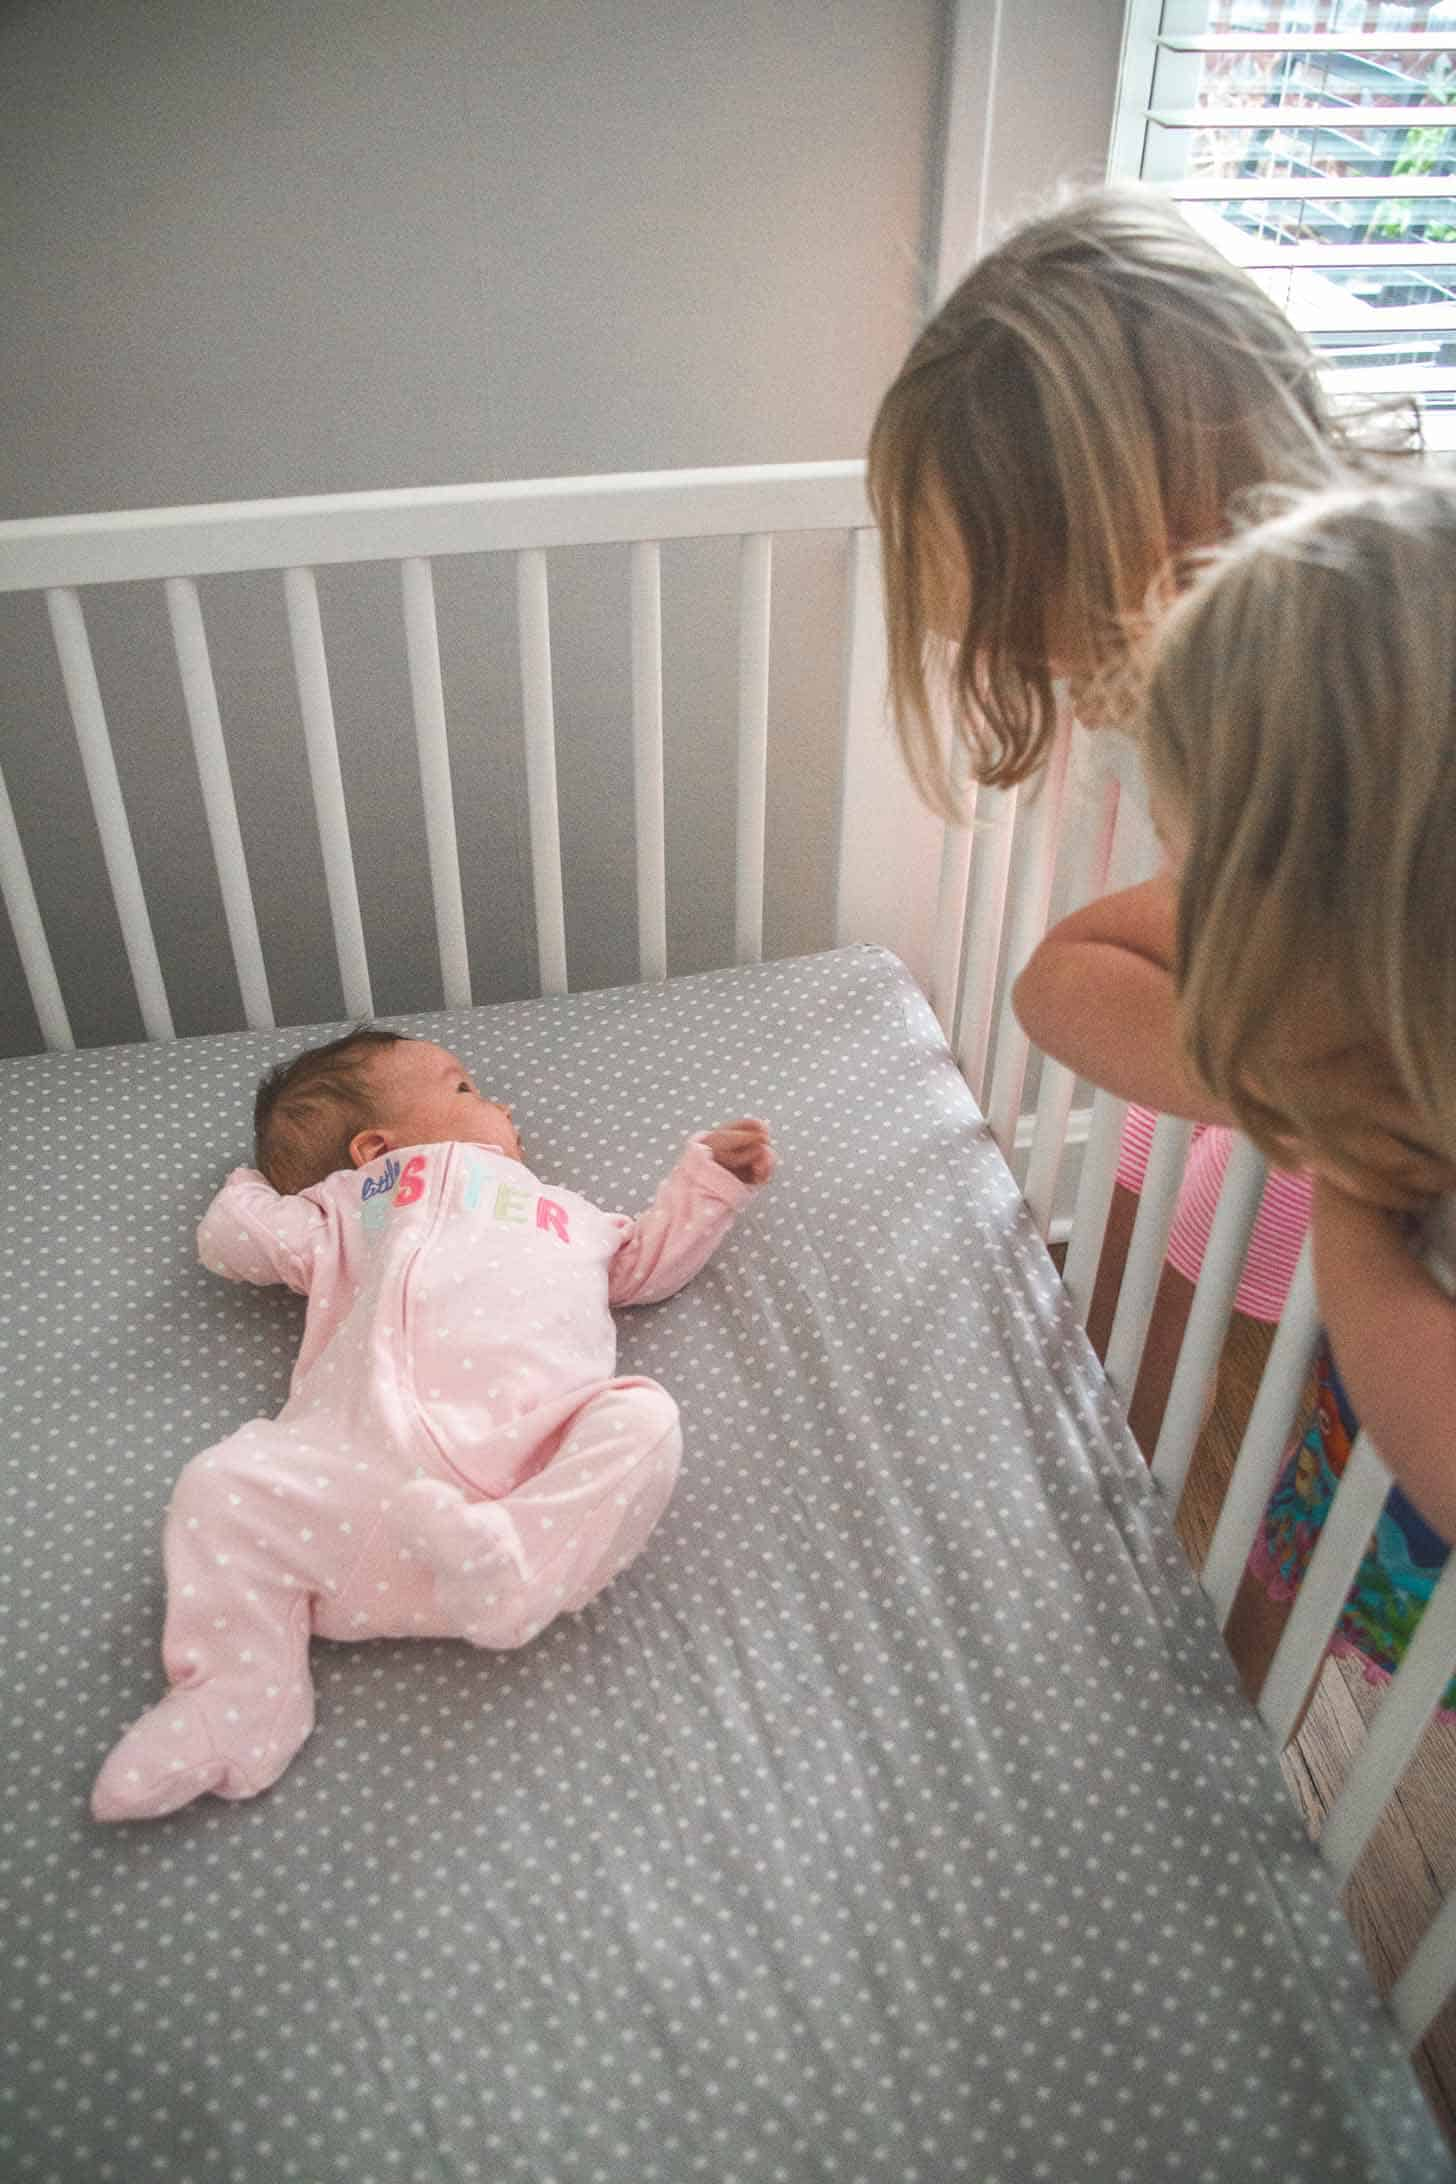 a baby in a crib